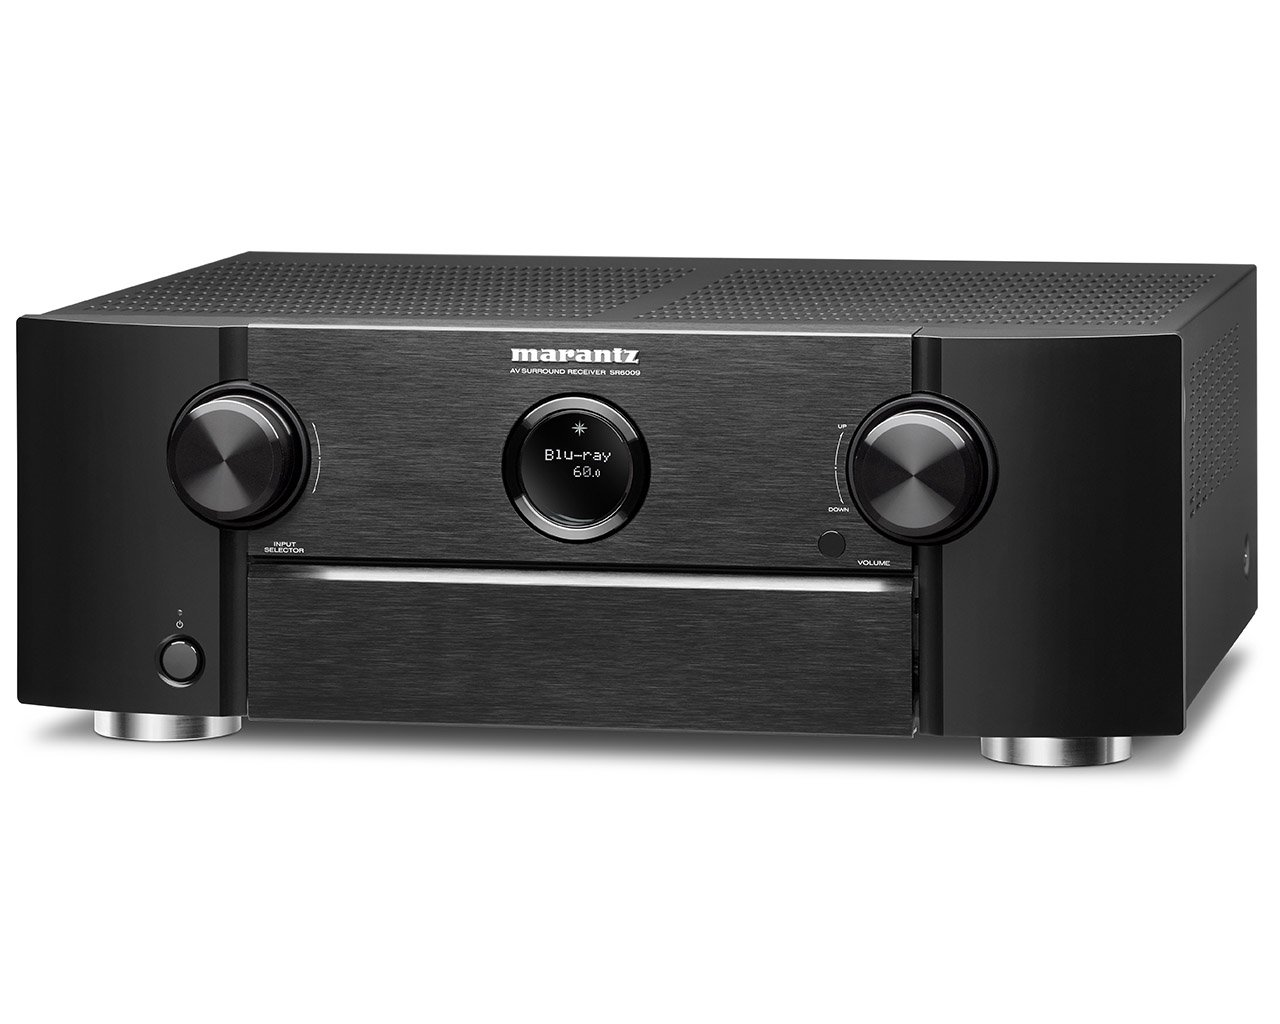 Amazon.com: Marantz SR6009-R Refurbished 7.2 Network Home Theater AV  Receiver Features Built-In Wi-Fi and Bluetooth: Home Audio & Theater